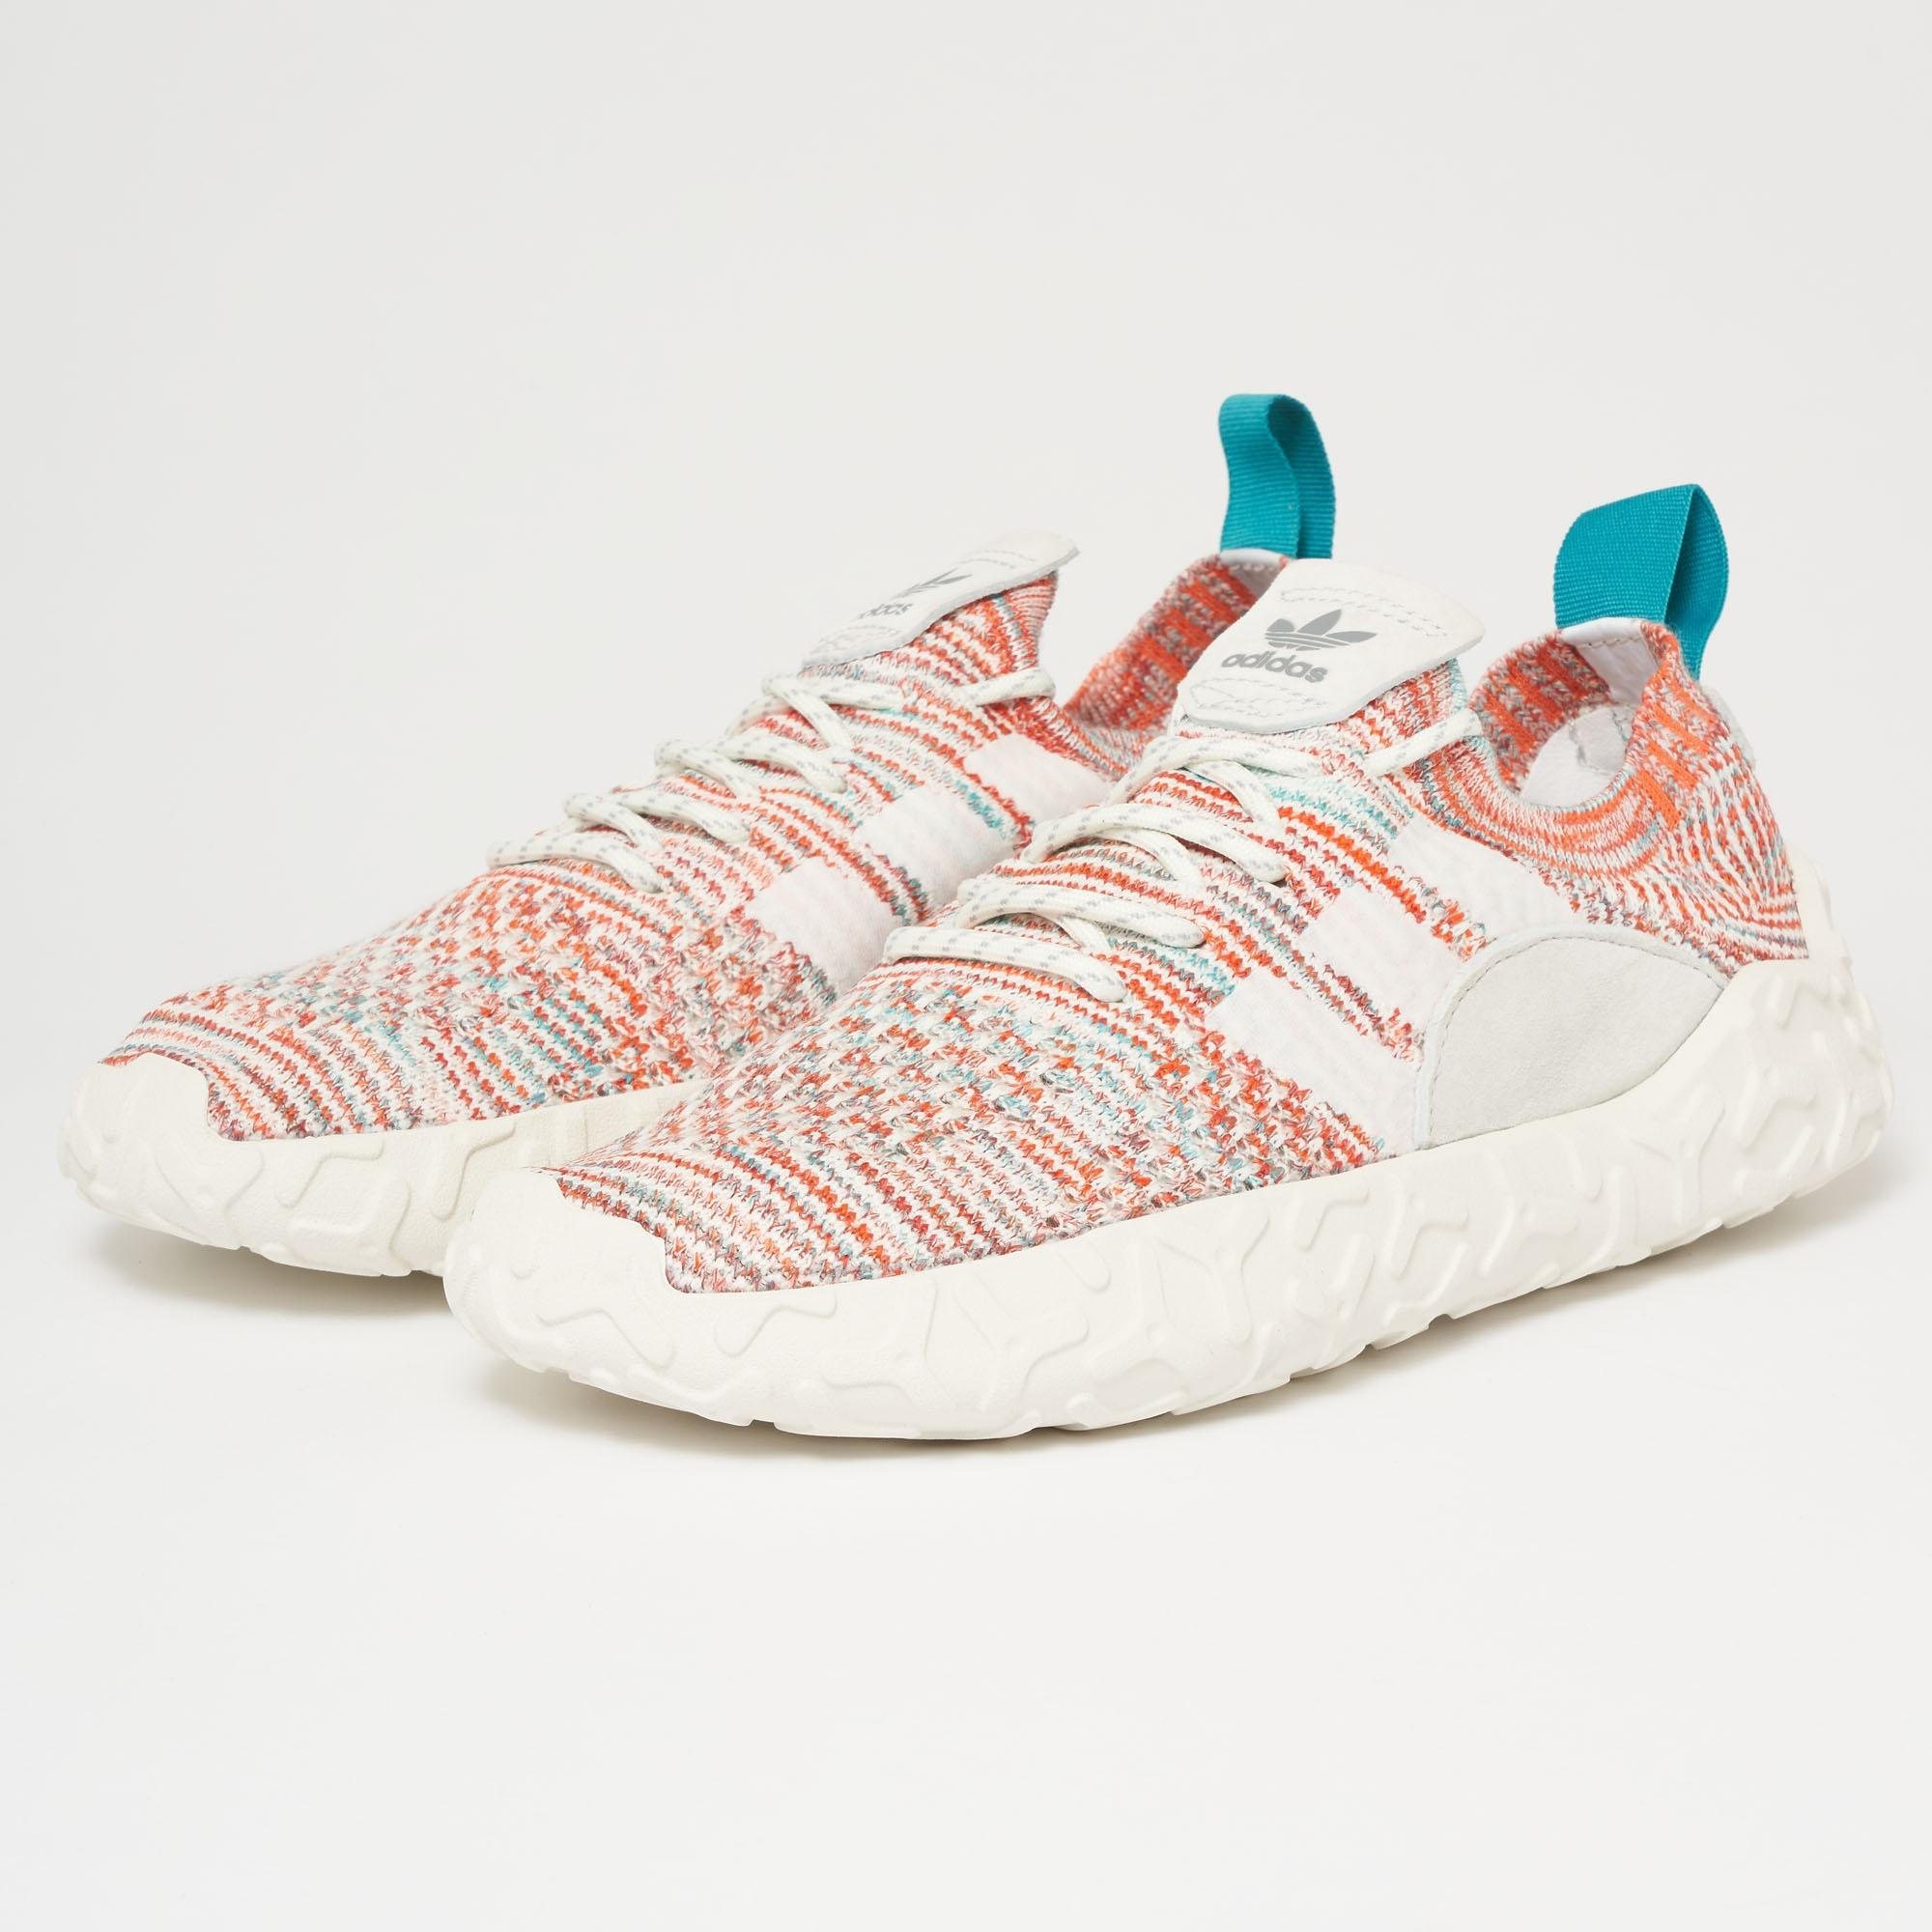 newest 969c8 e340d adidas Originals. Mens F22 Primeknit ...